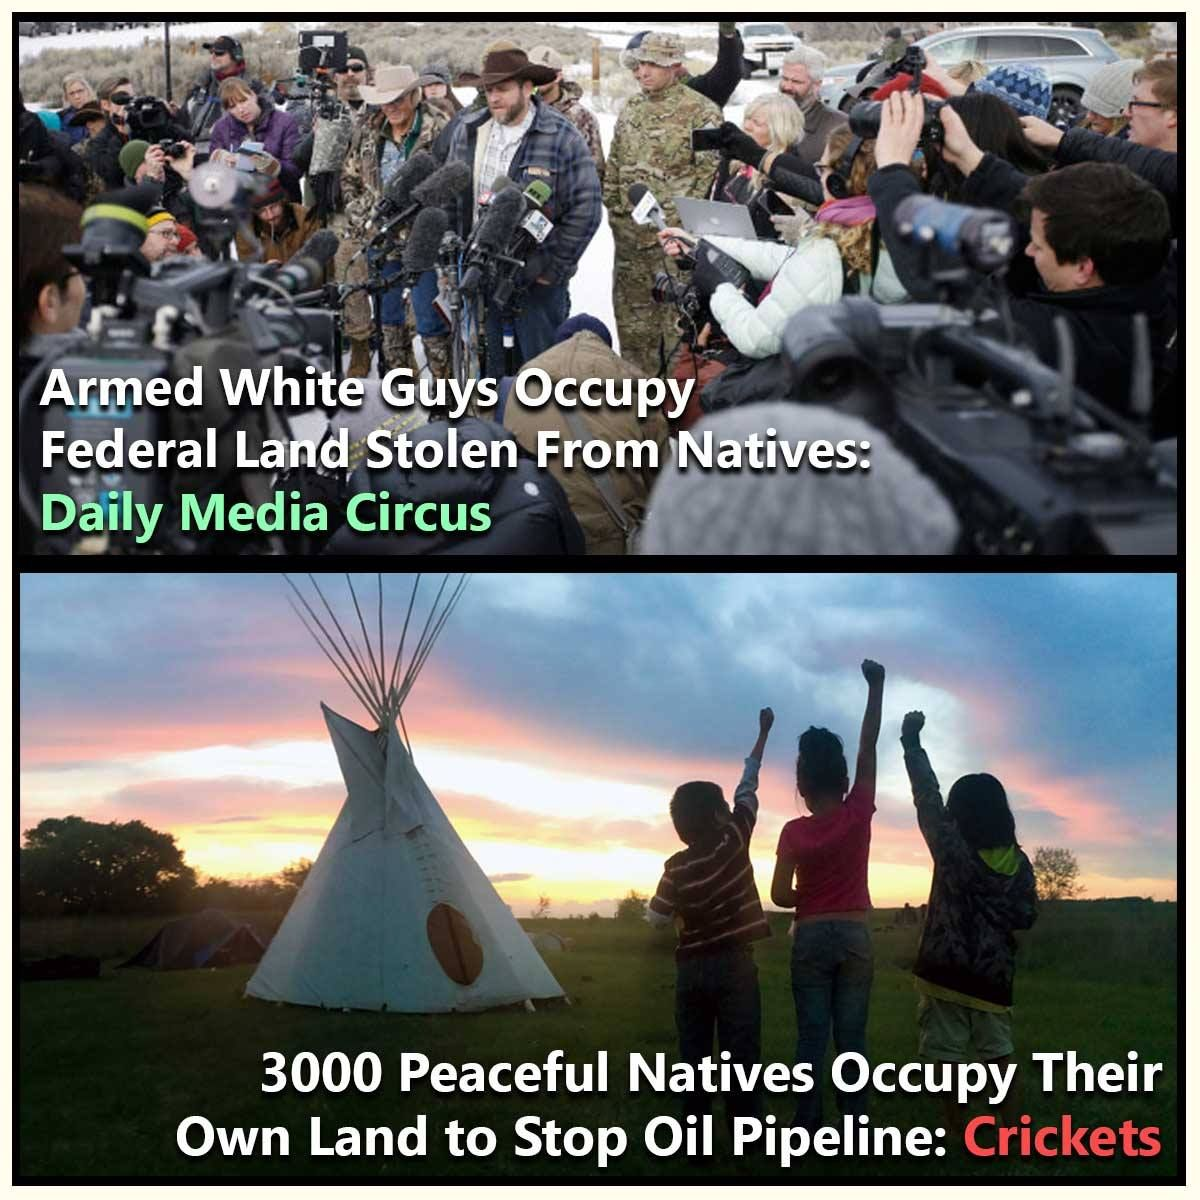 """#Media #Oligarchs #MegaBanks vs #Union #Occupy #BLM   Manning: 'And Then the Dogs Came': Dakota Access Gets Violent, Destroys Graves, Sacred Sites  https://plus.google.com/u/0/111262982046184002072/posts/JMSHPLJ9D9J  """"They let one dog off his leash and ran loose into the crowd. That's when people started protecting themselves against the dog. The guy that let his dog go came into the crowd to retrieve him and starte"""